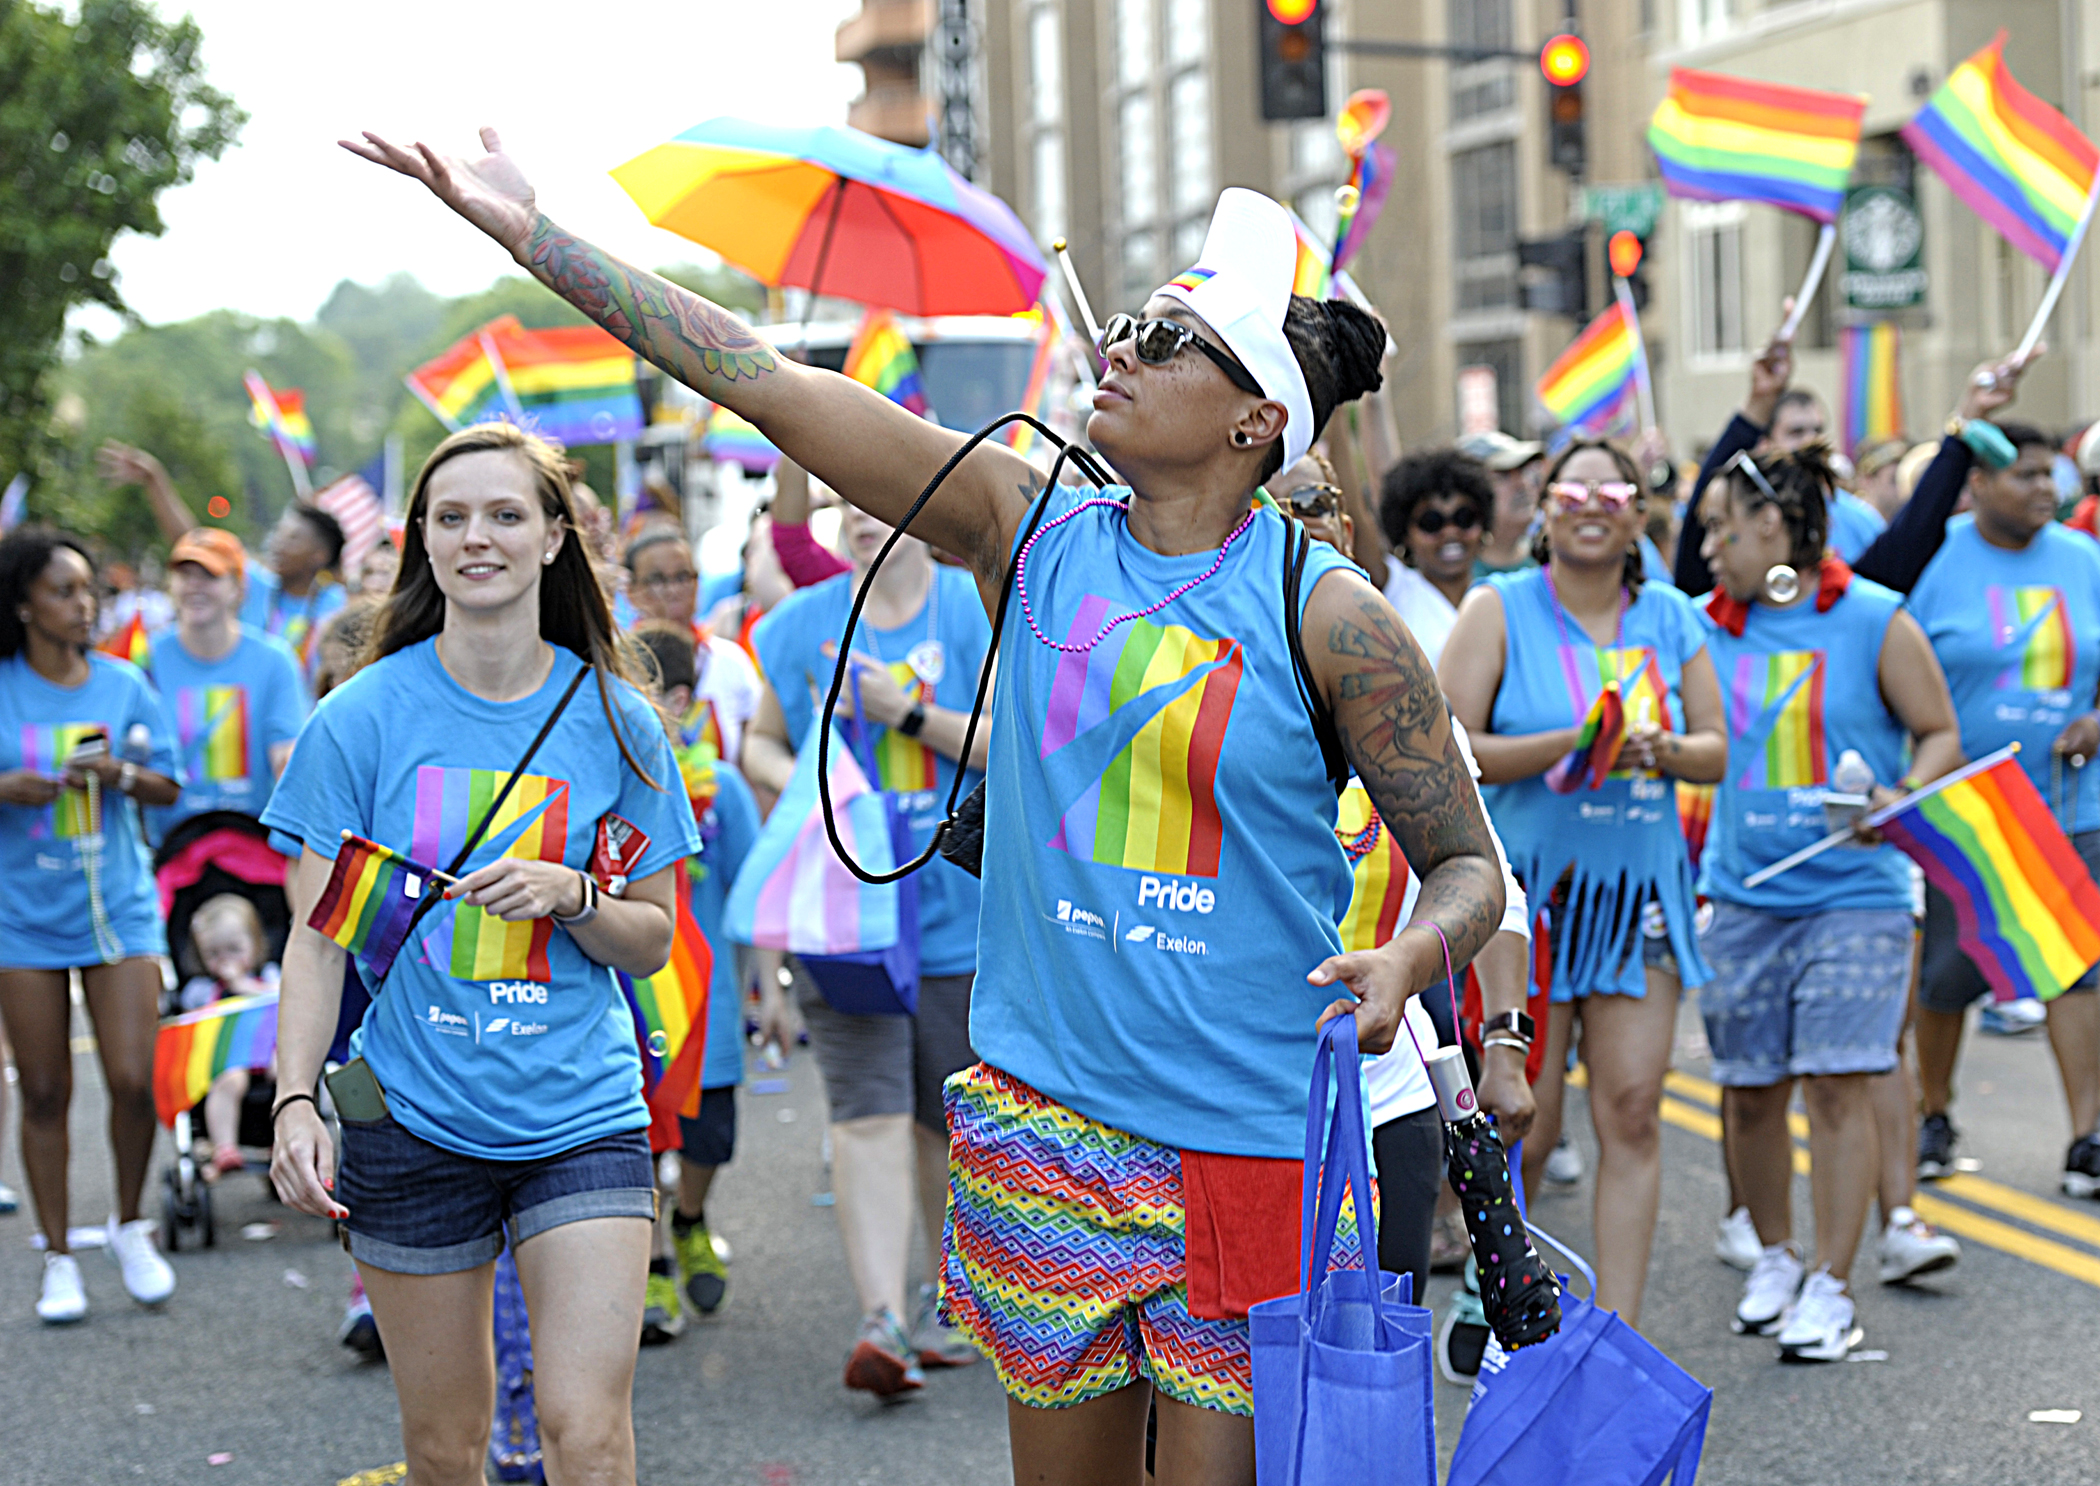 Pride March with flags and Pepco sponsored t-shirts